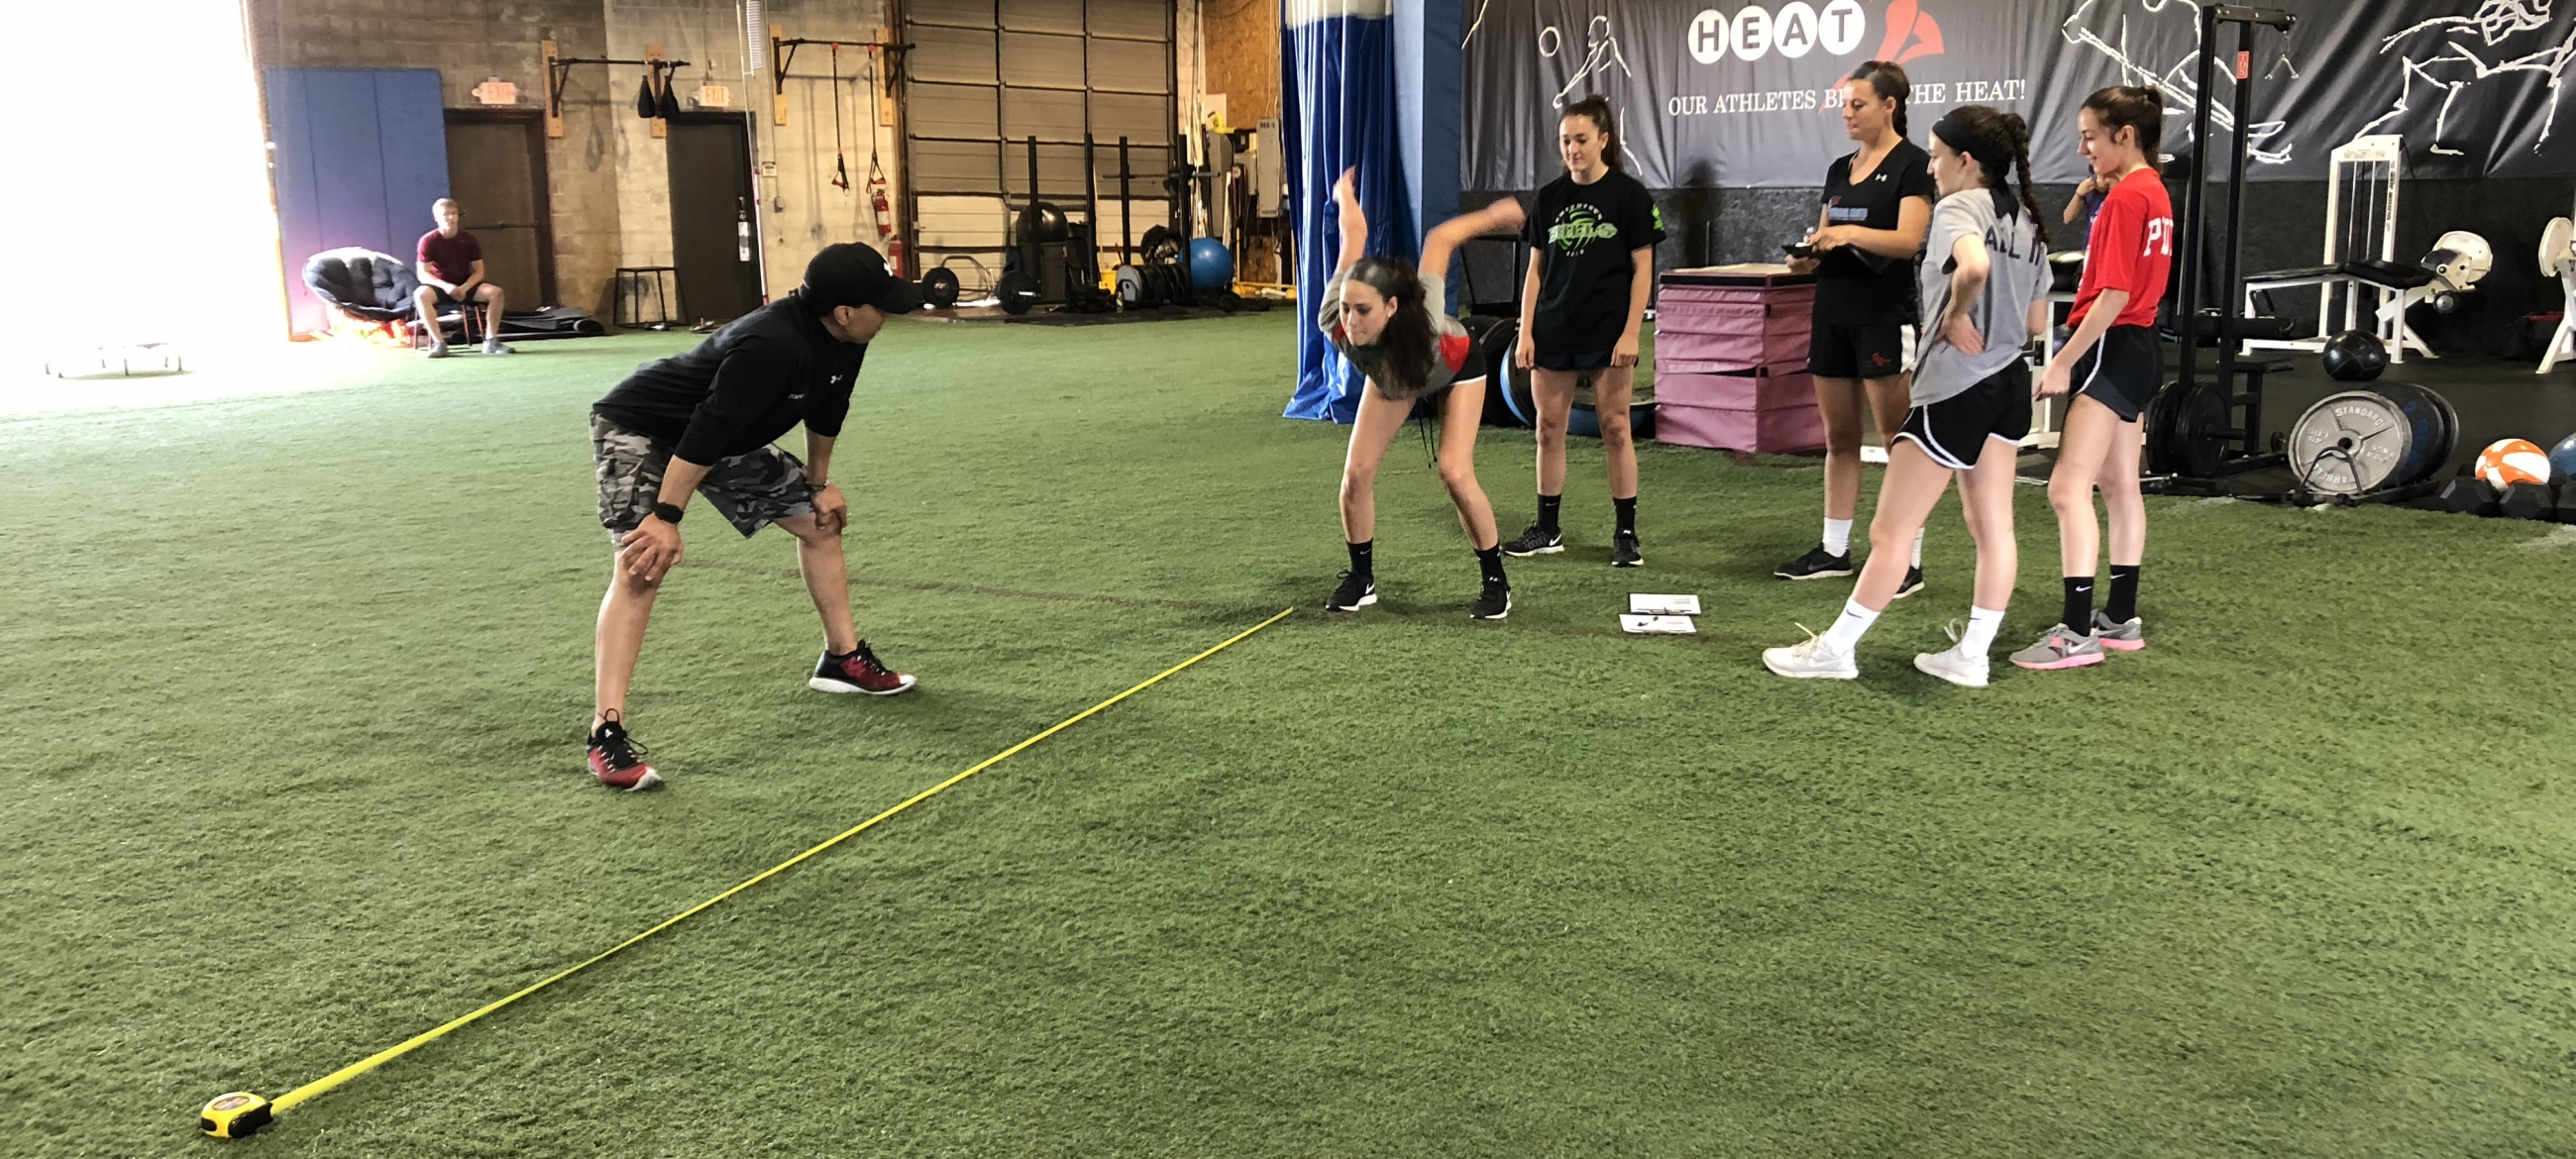 Speed and Agility | Long Island Indoor Sports Facility - The